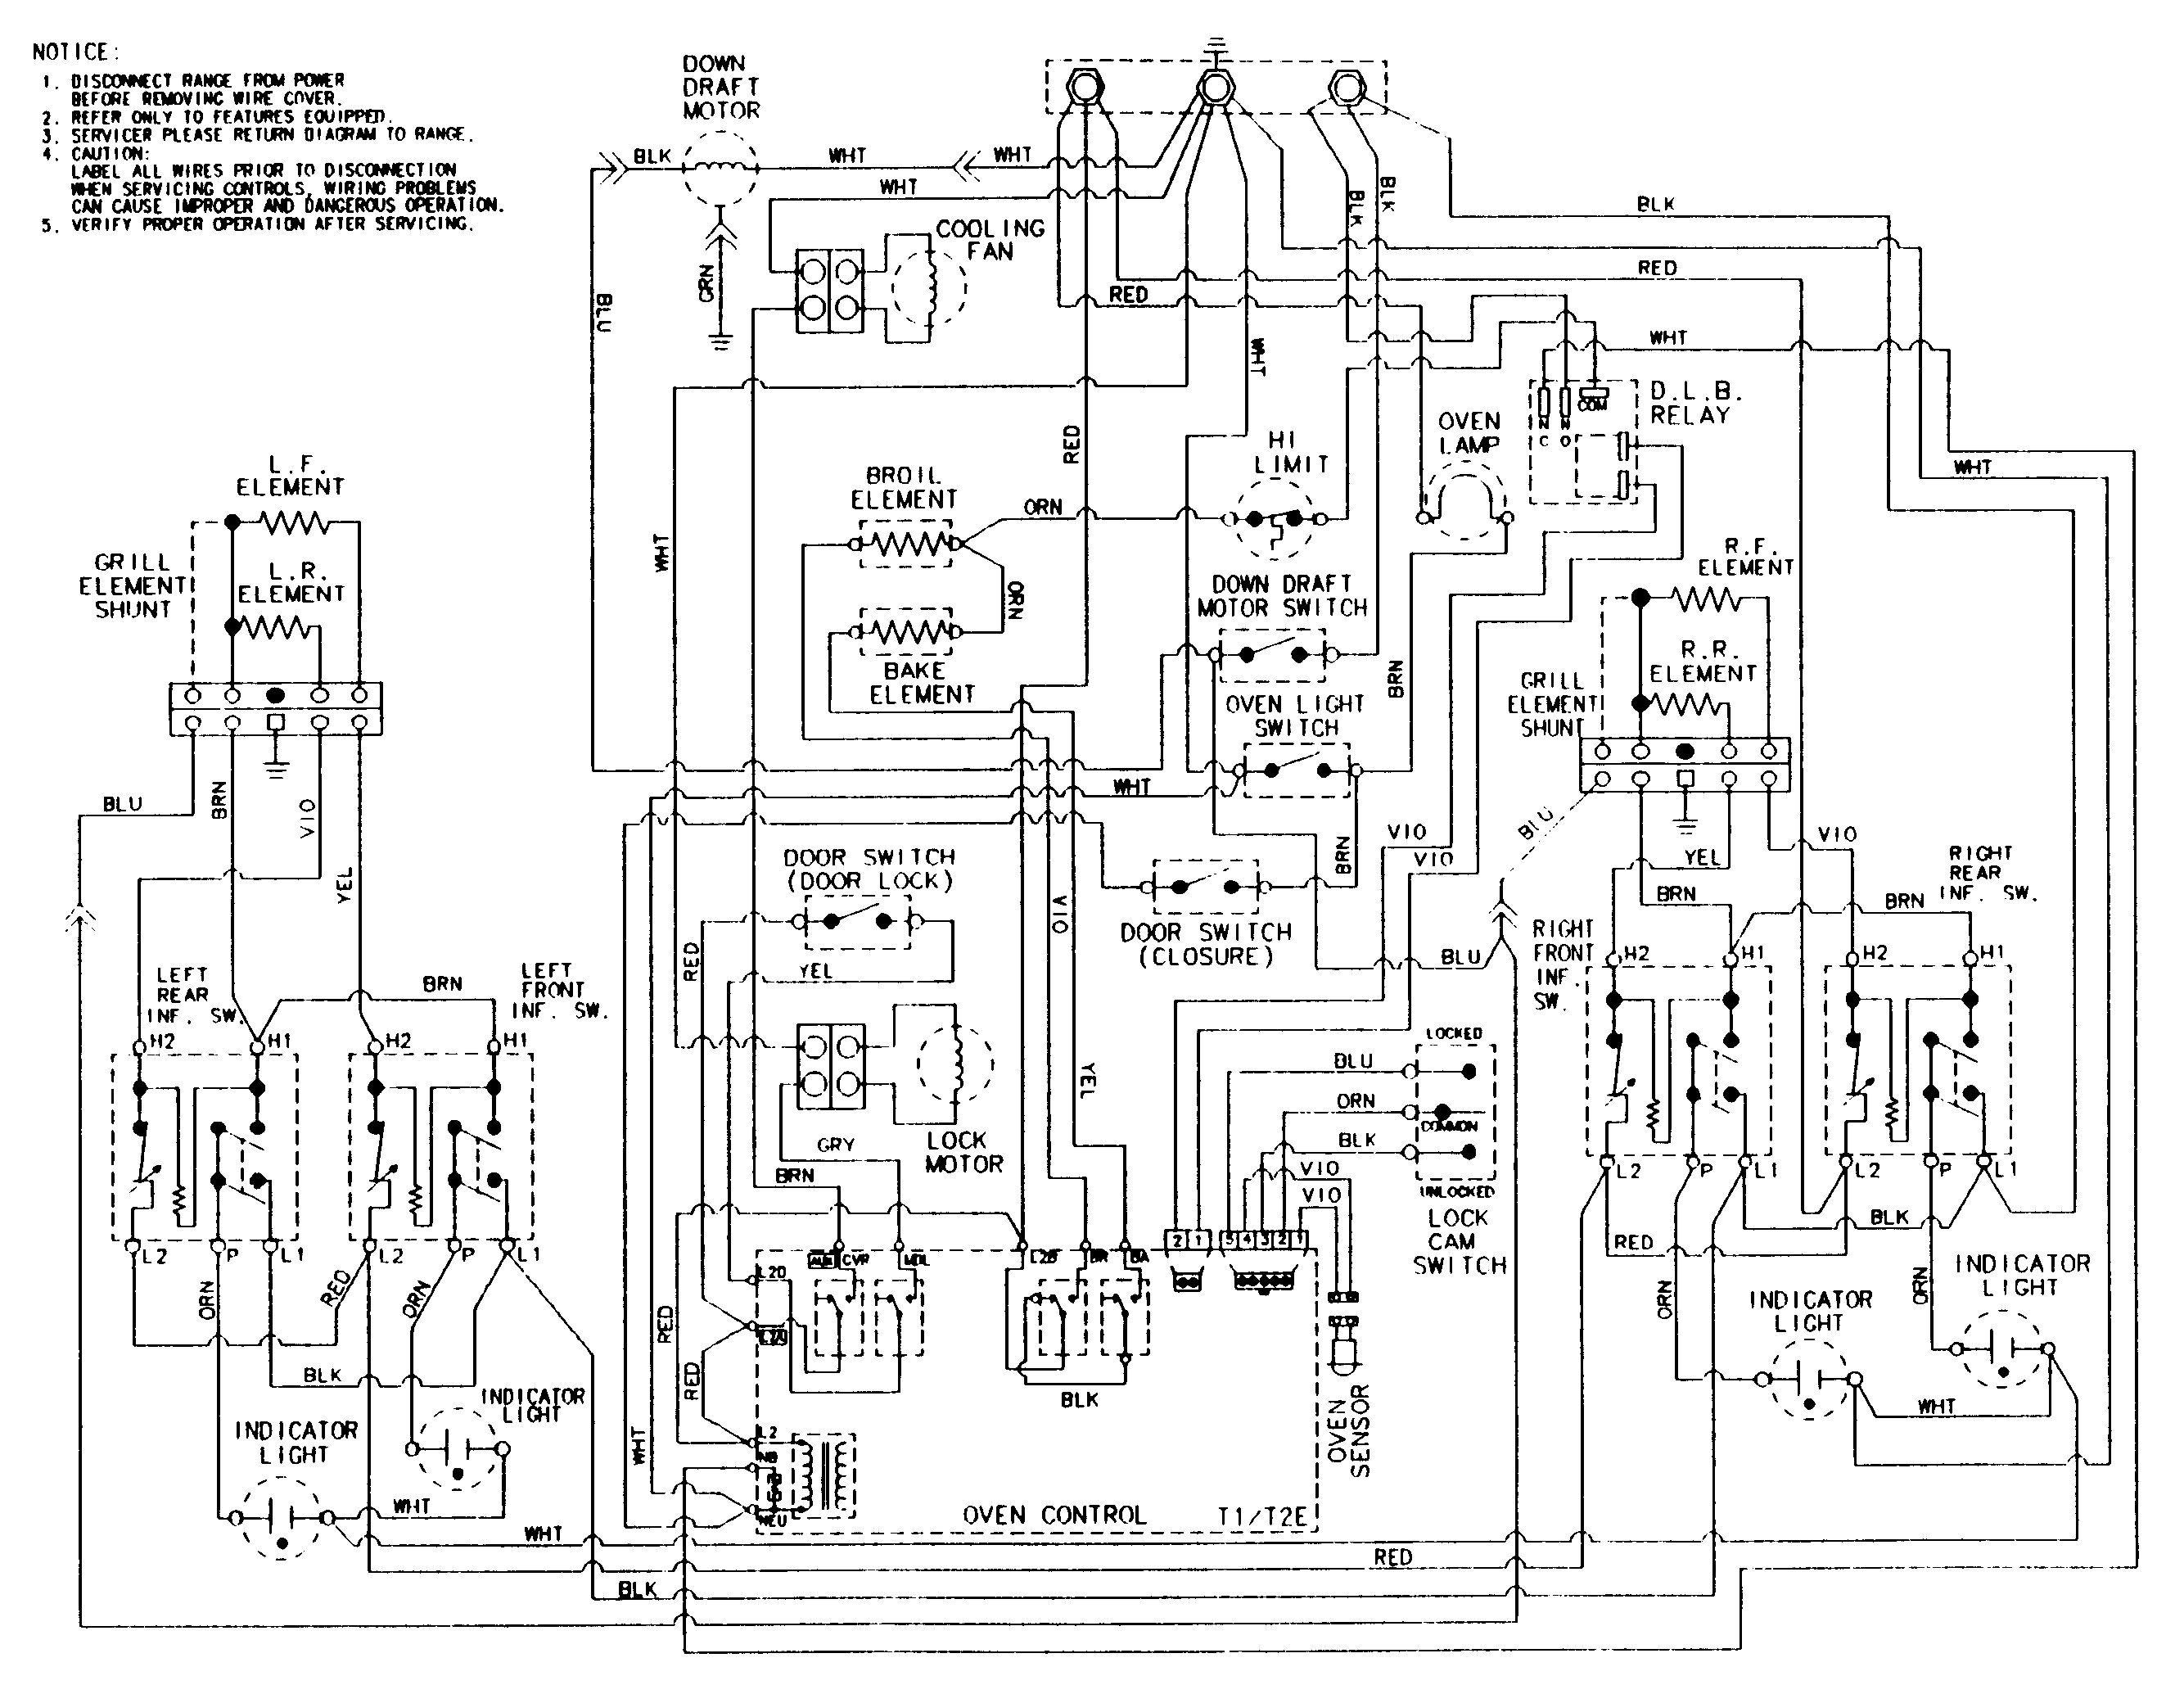 wiring information sve47100bc wc ser 14 parts stove fan and light wiring diagram wiring library